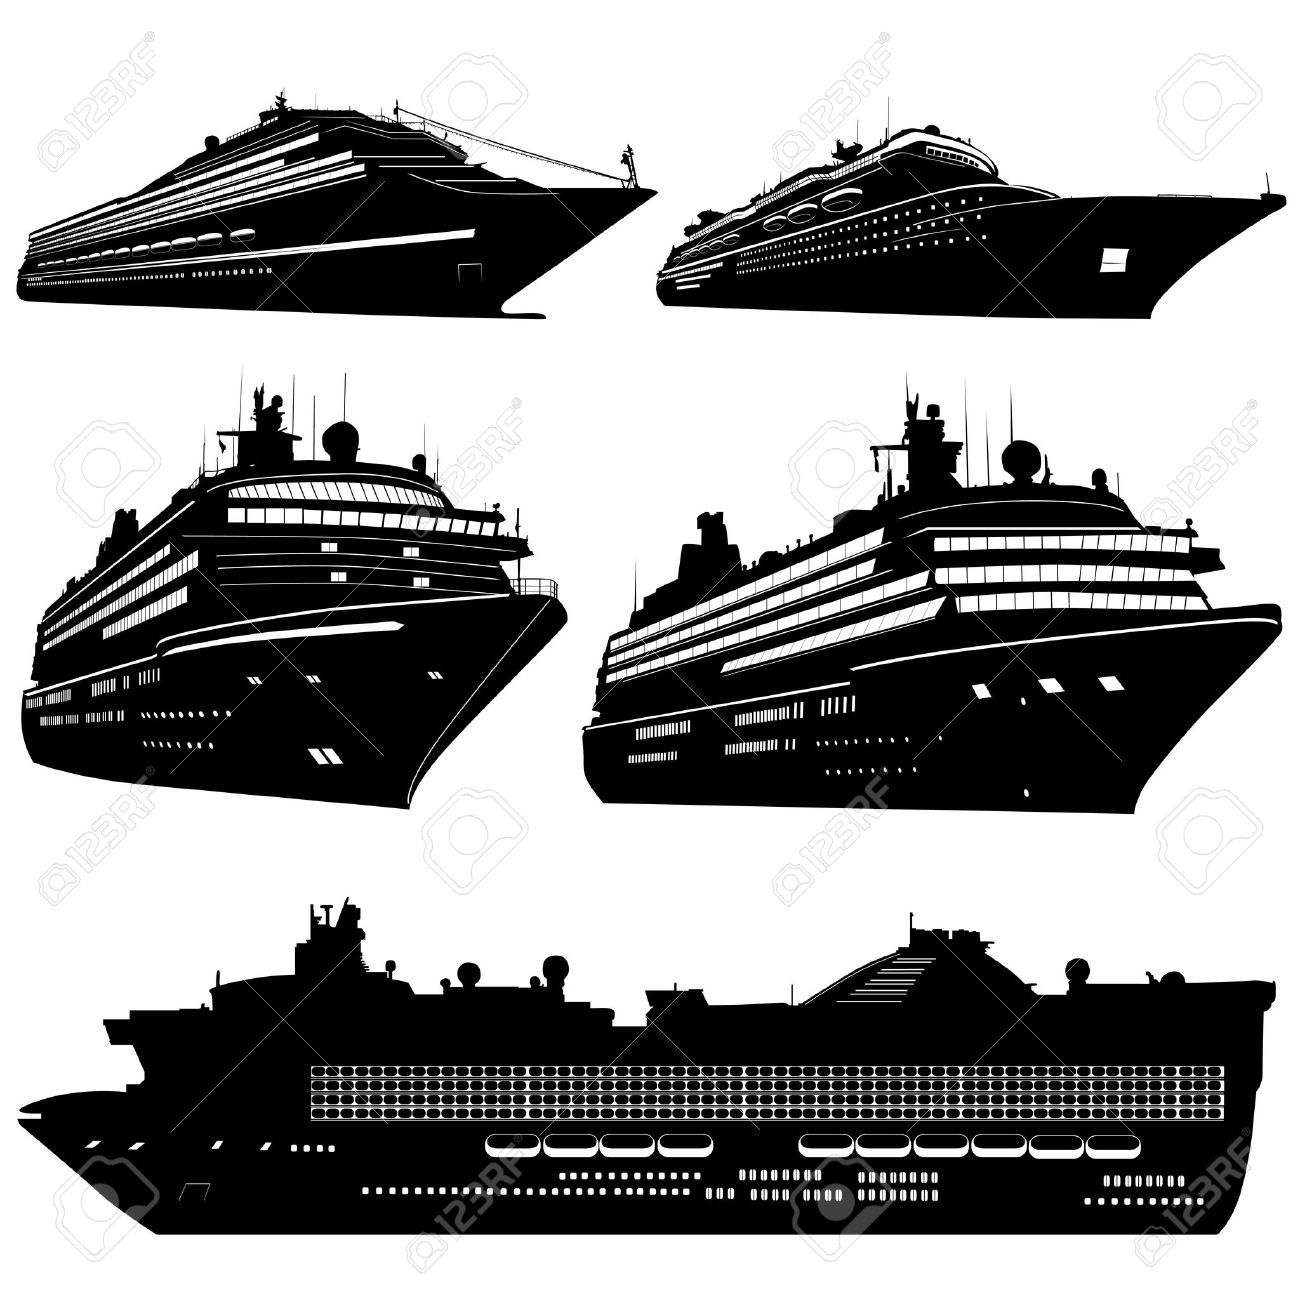 Free download Cruise Ship Silhouette Clipart for your.